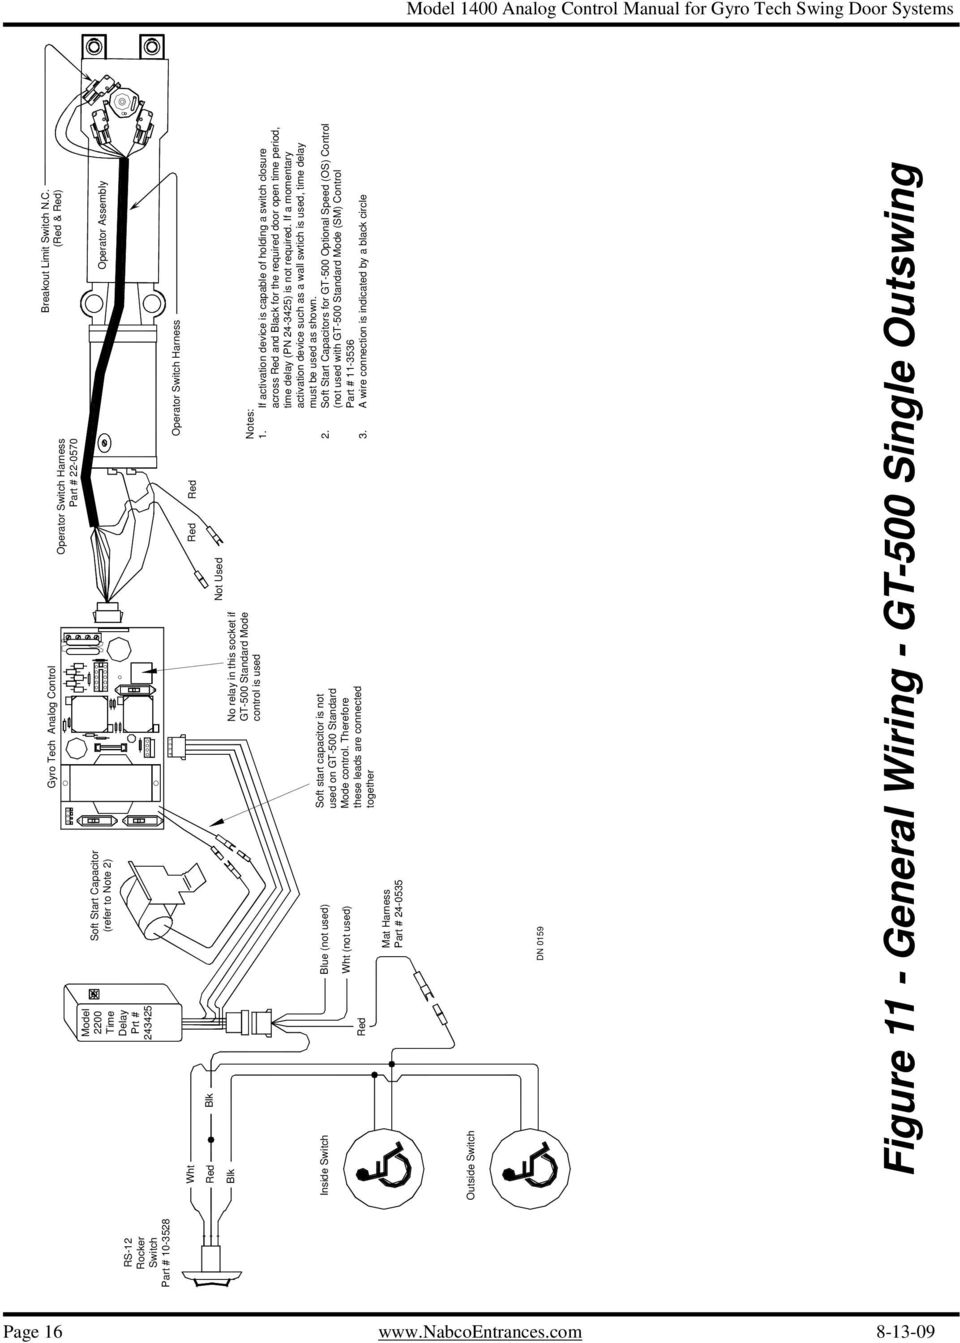 Analog Control Wiring Adjustment Manual For Gyro Tech Swing Door In Contact Series Wire Diagram If Activation Device Is Capable Of Holding A Switch Closure Across And Black The Required